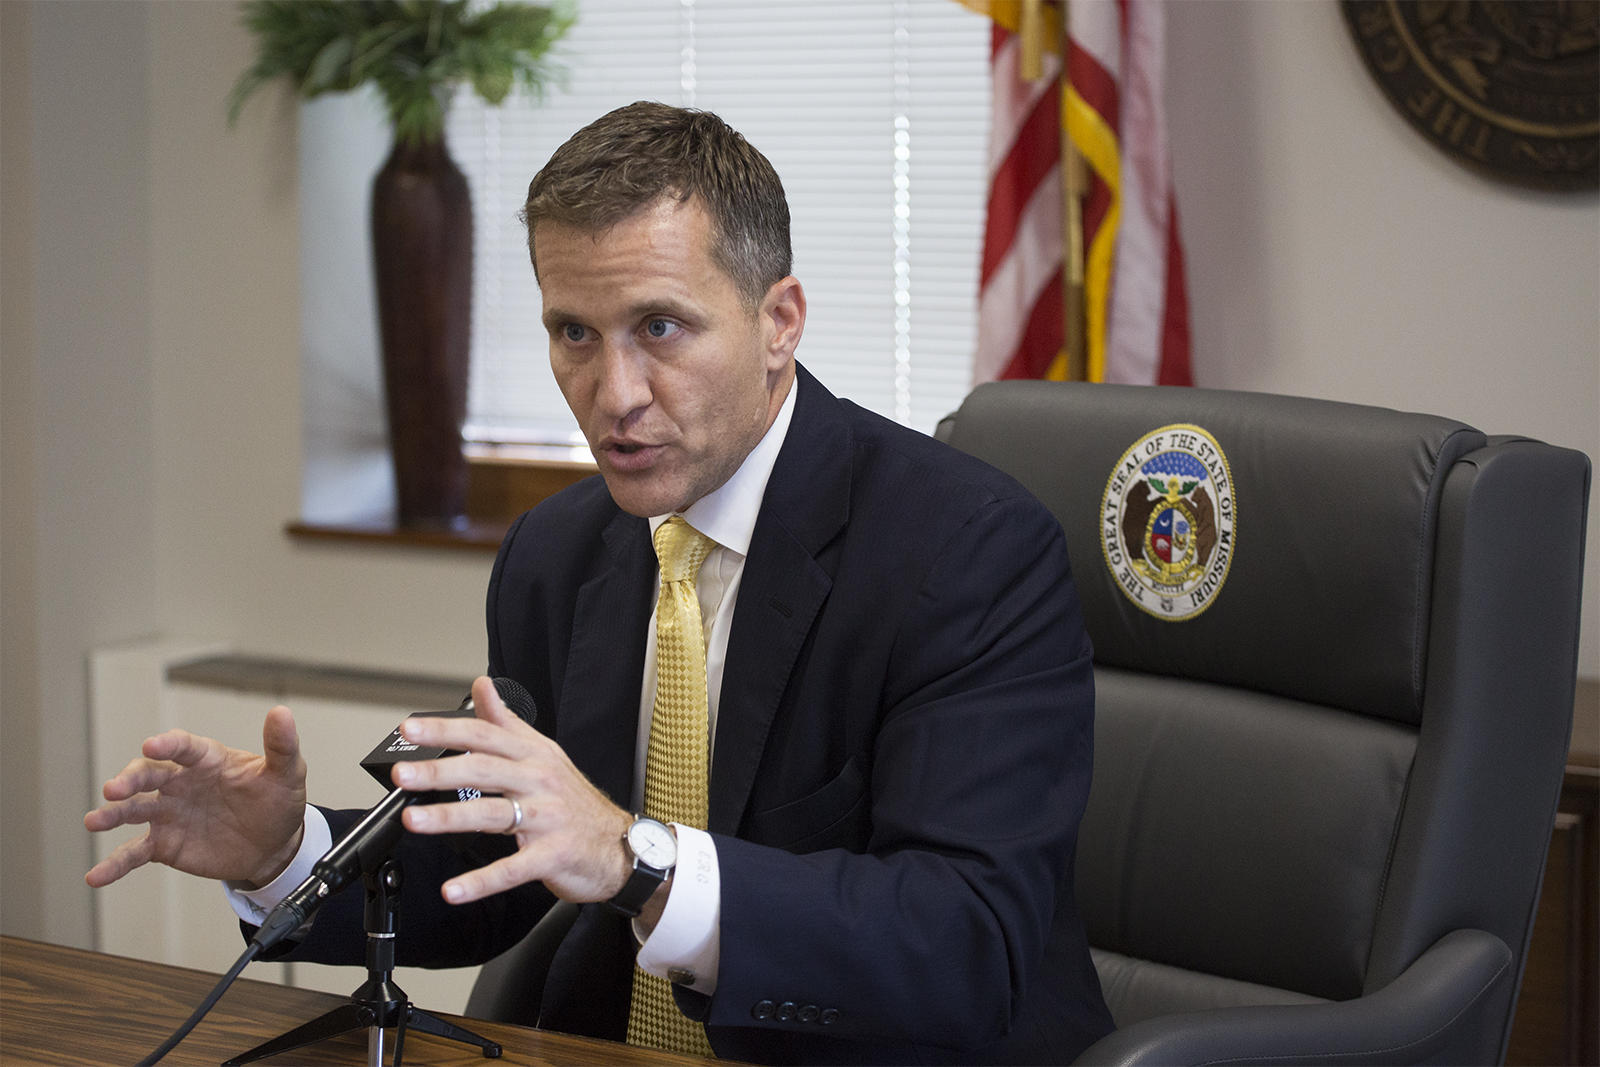 Gov. Greitens to visit Jackson, MO on tour promoting tax cuts